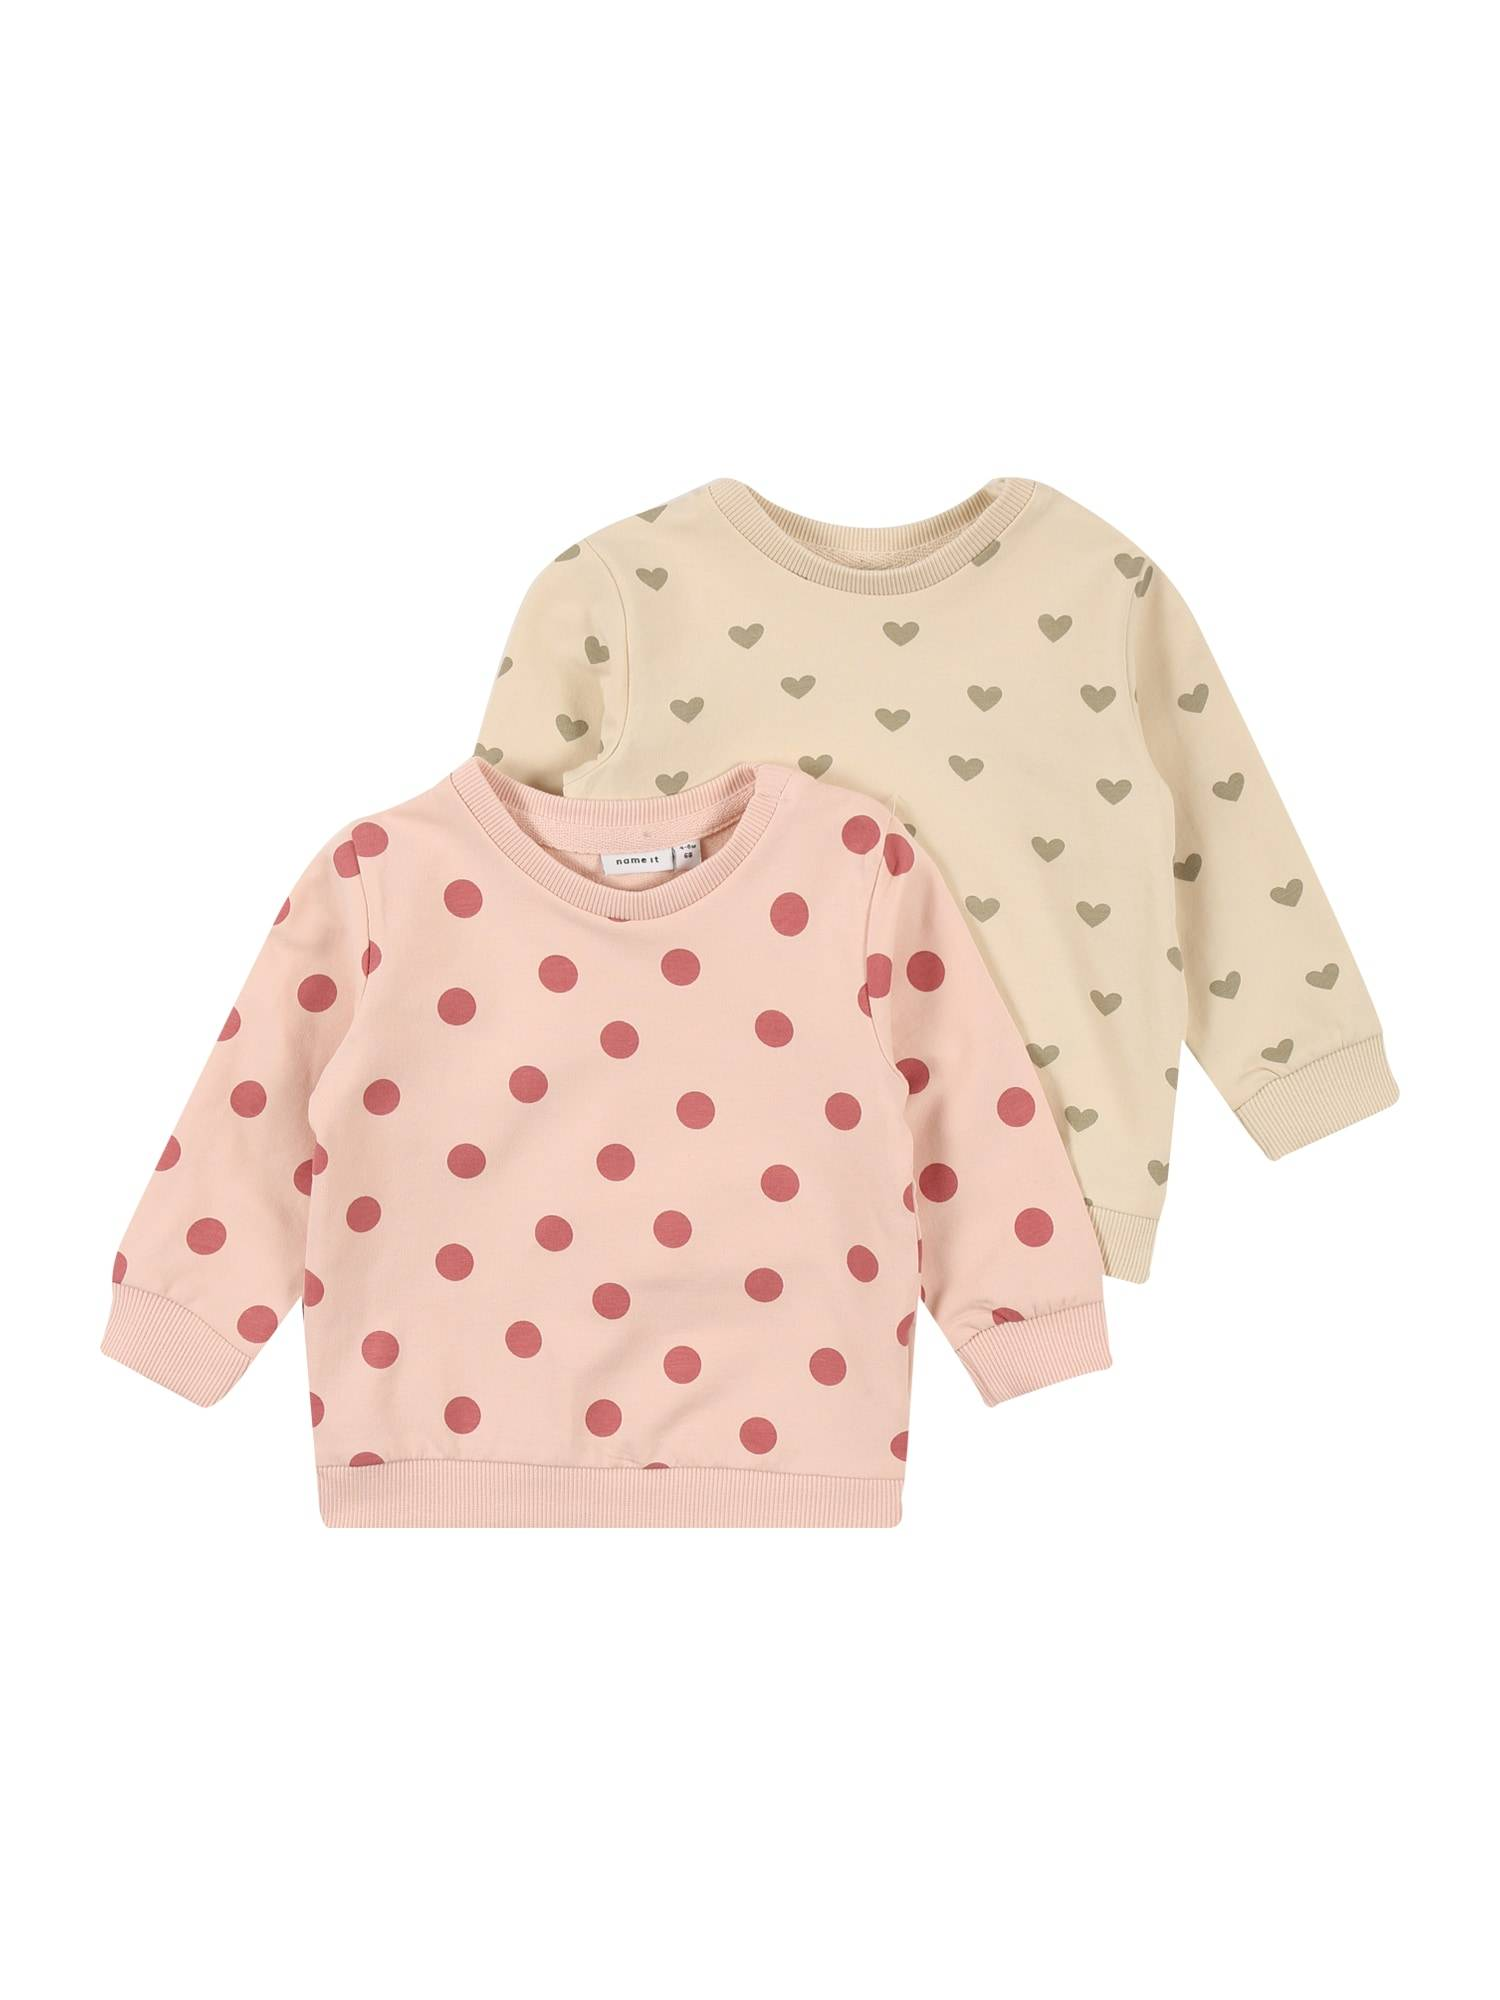 NAME IT Sweat-shirt 'TINNE'  - Rose, Beige - Taille: 80 - kids